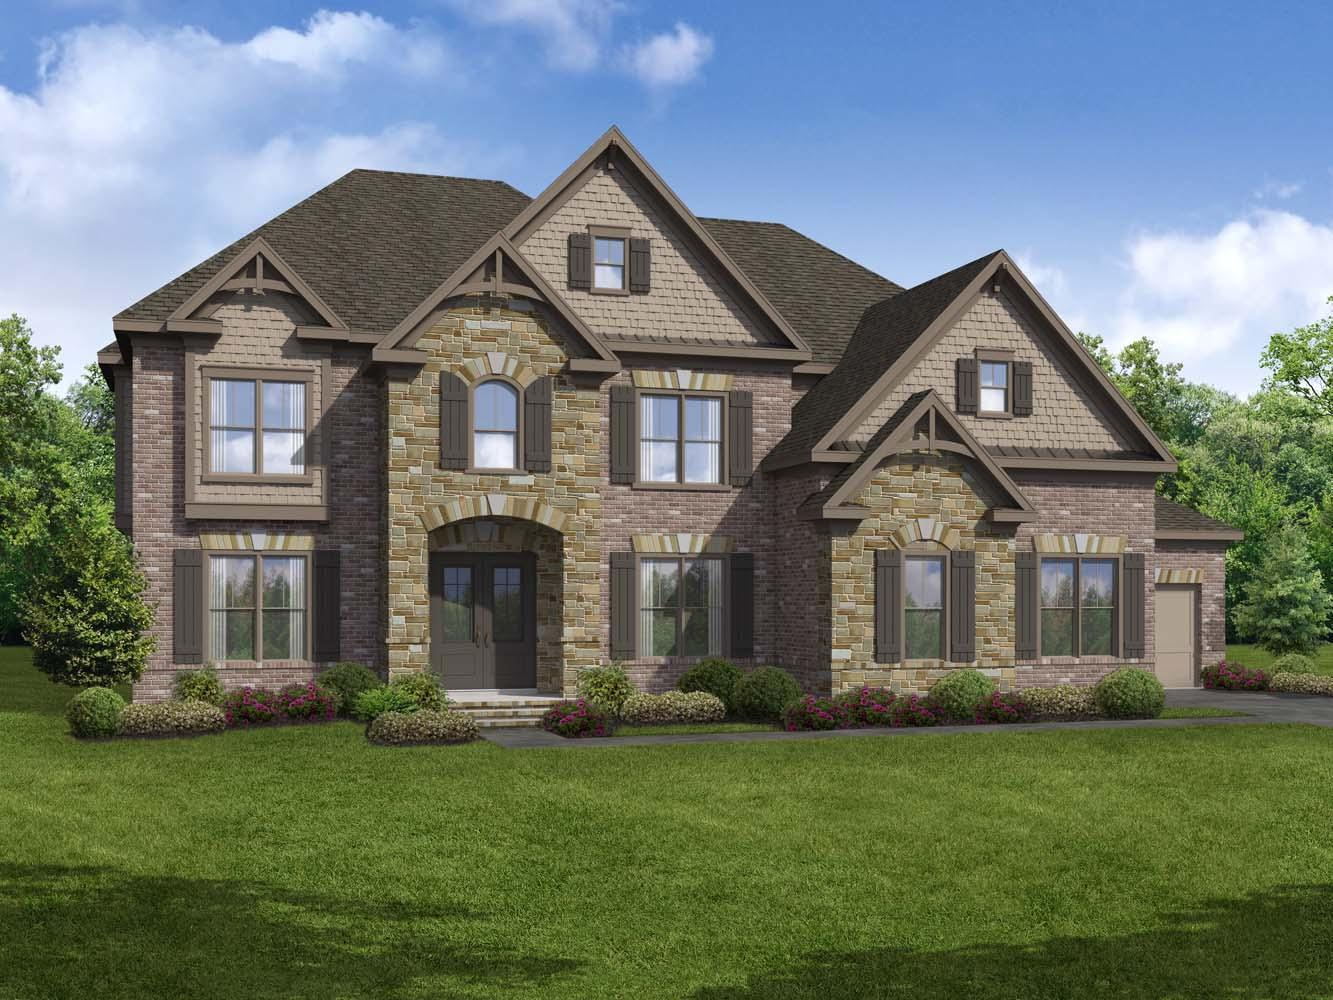 Single Family for Active at Stonewater Creek - Norwich 4661 Gablestone Drive Hoschton, Georgia 30548 United States